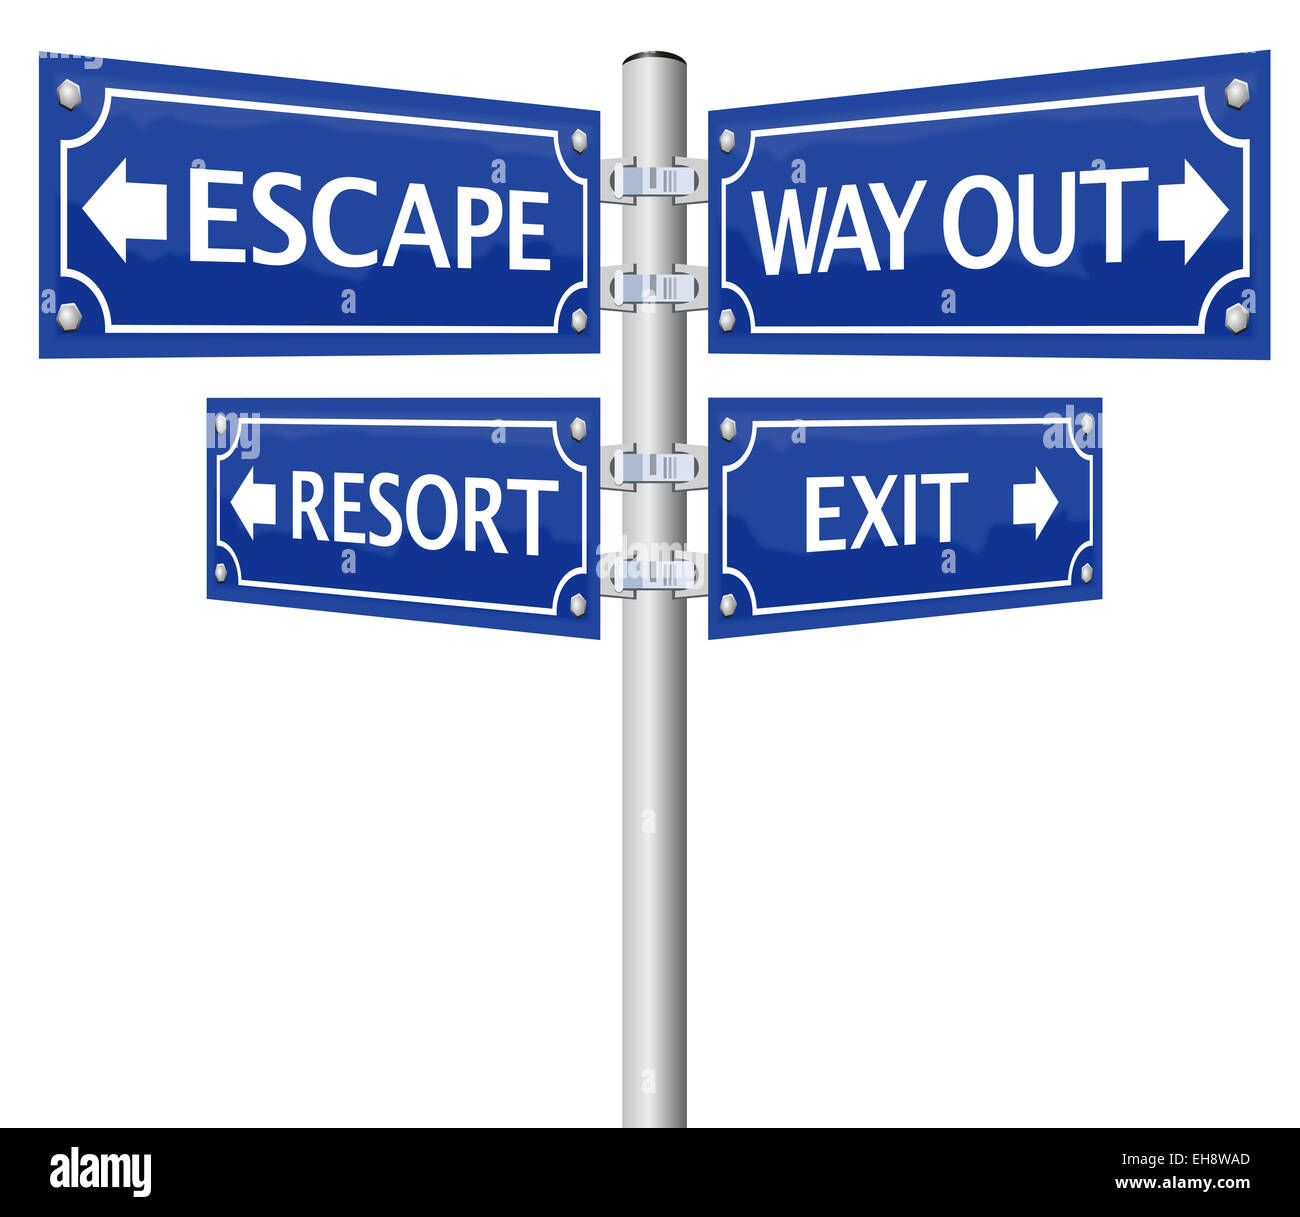 EXIT, ESCAPE, WAY OUT and RESORT, written on four signposts. - Stock Image